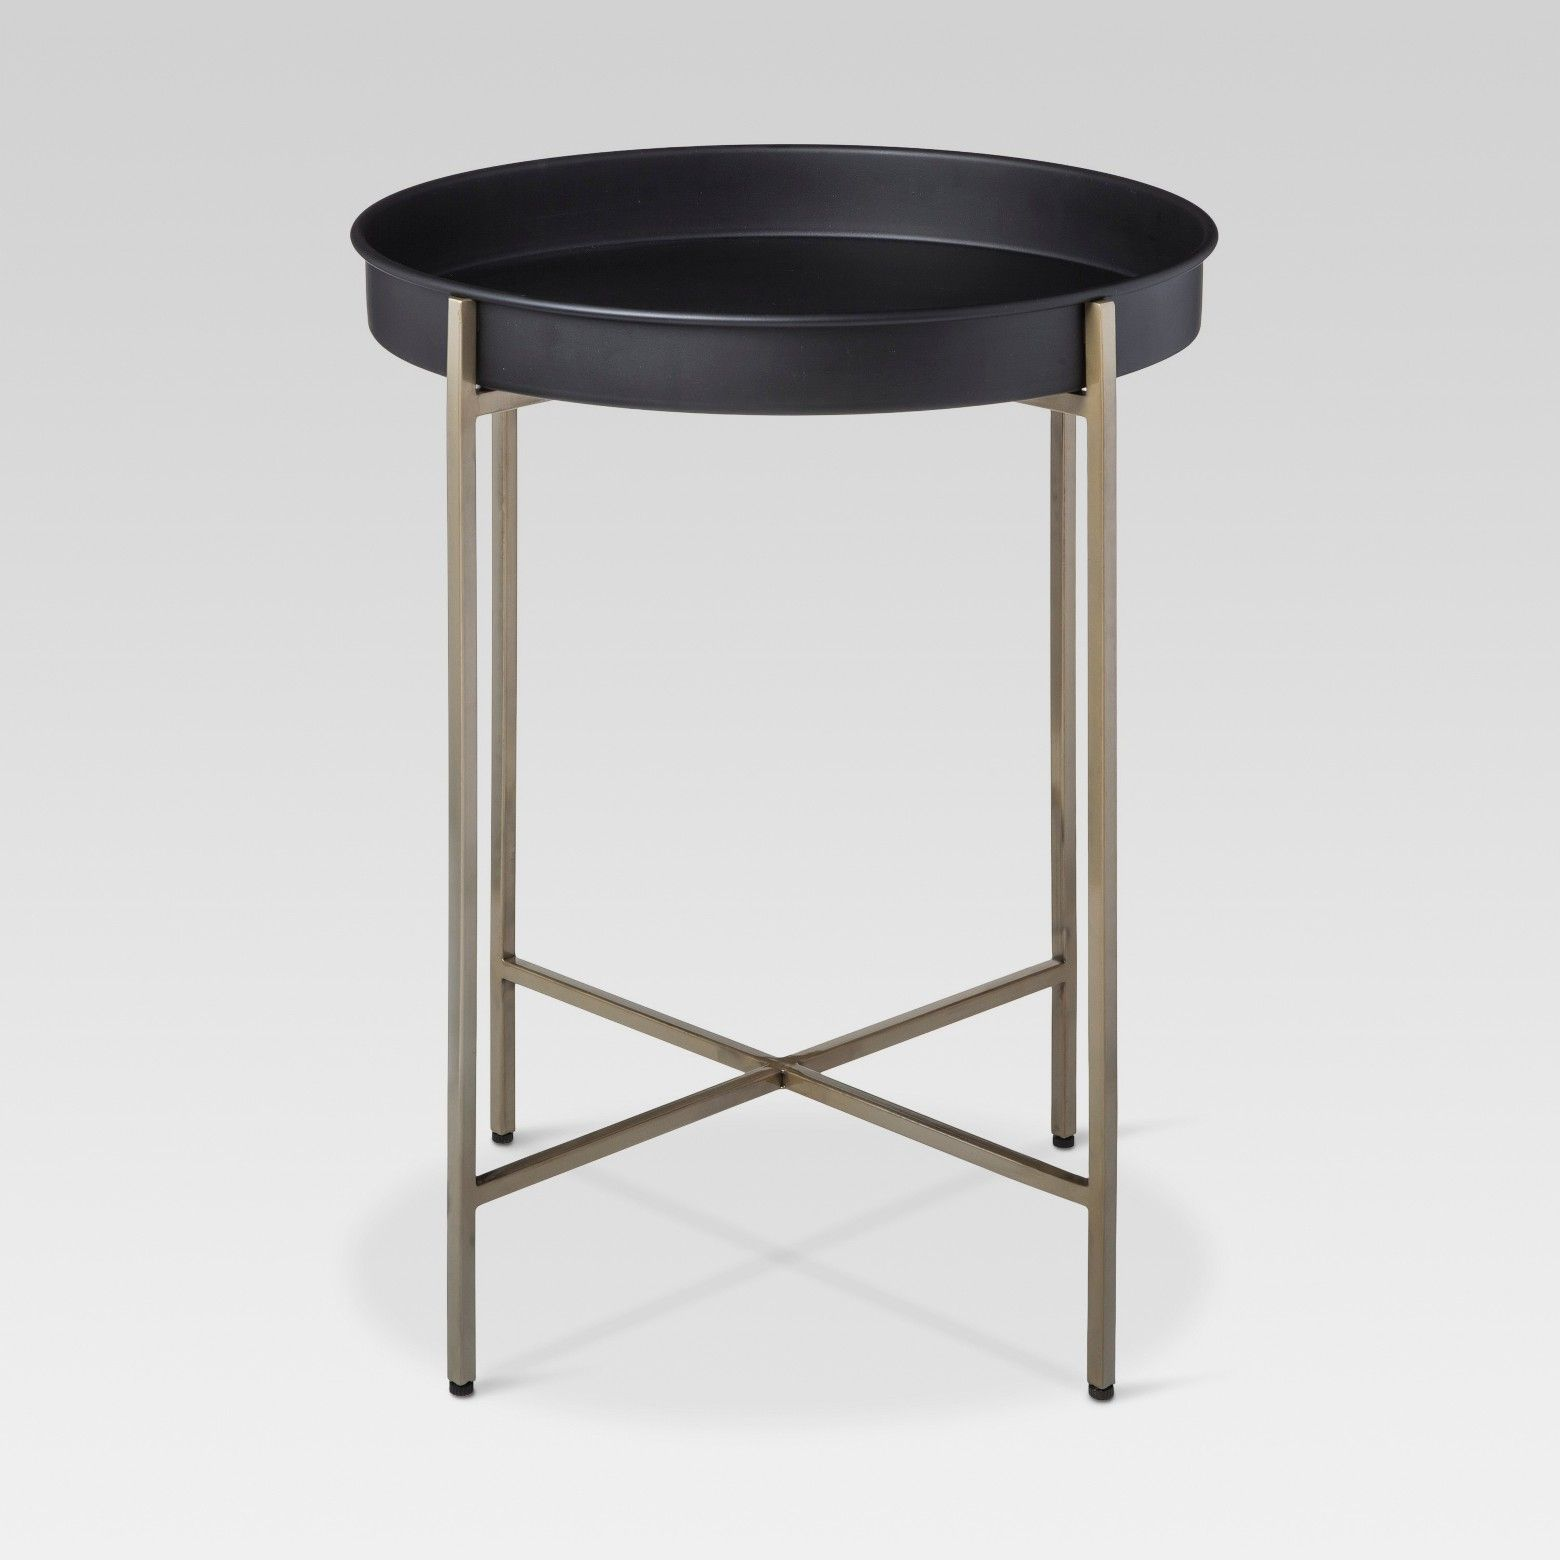 Threshold Brass Tray Accent Table | Trays, Simple designs and Living ...